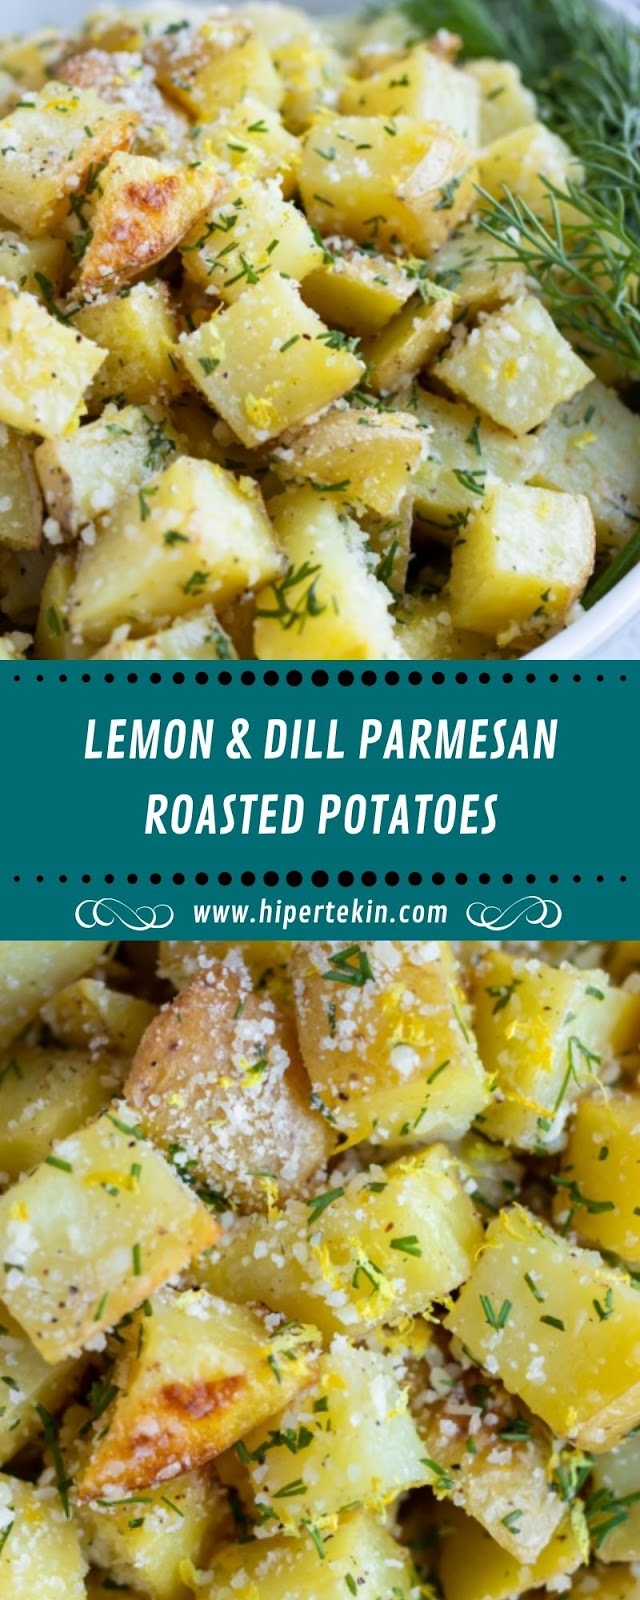 LEMON & DILL PARMESAN ROASTED POTATOES